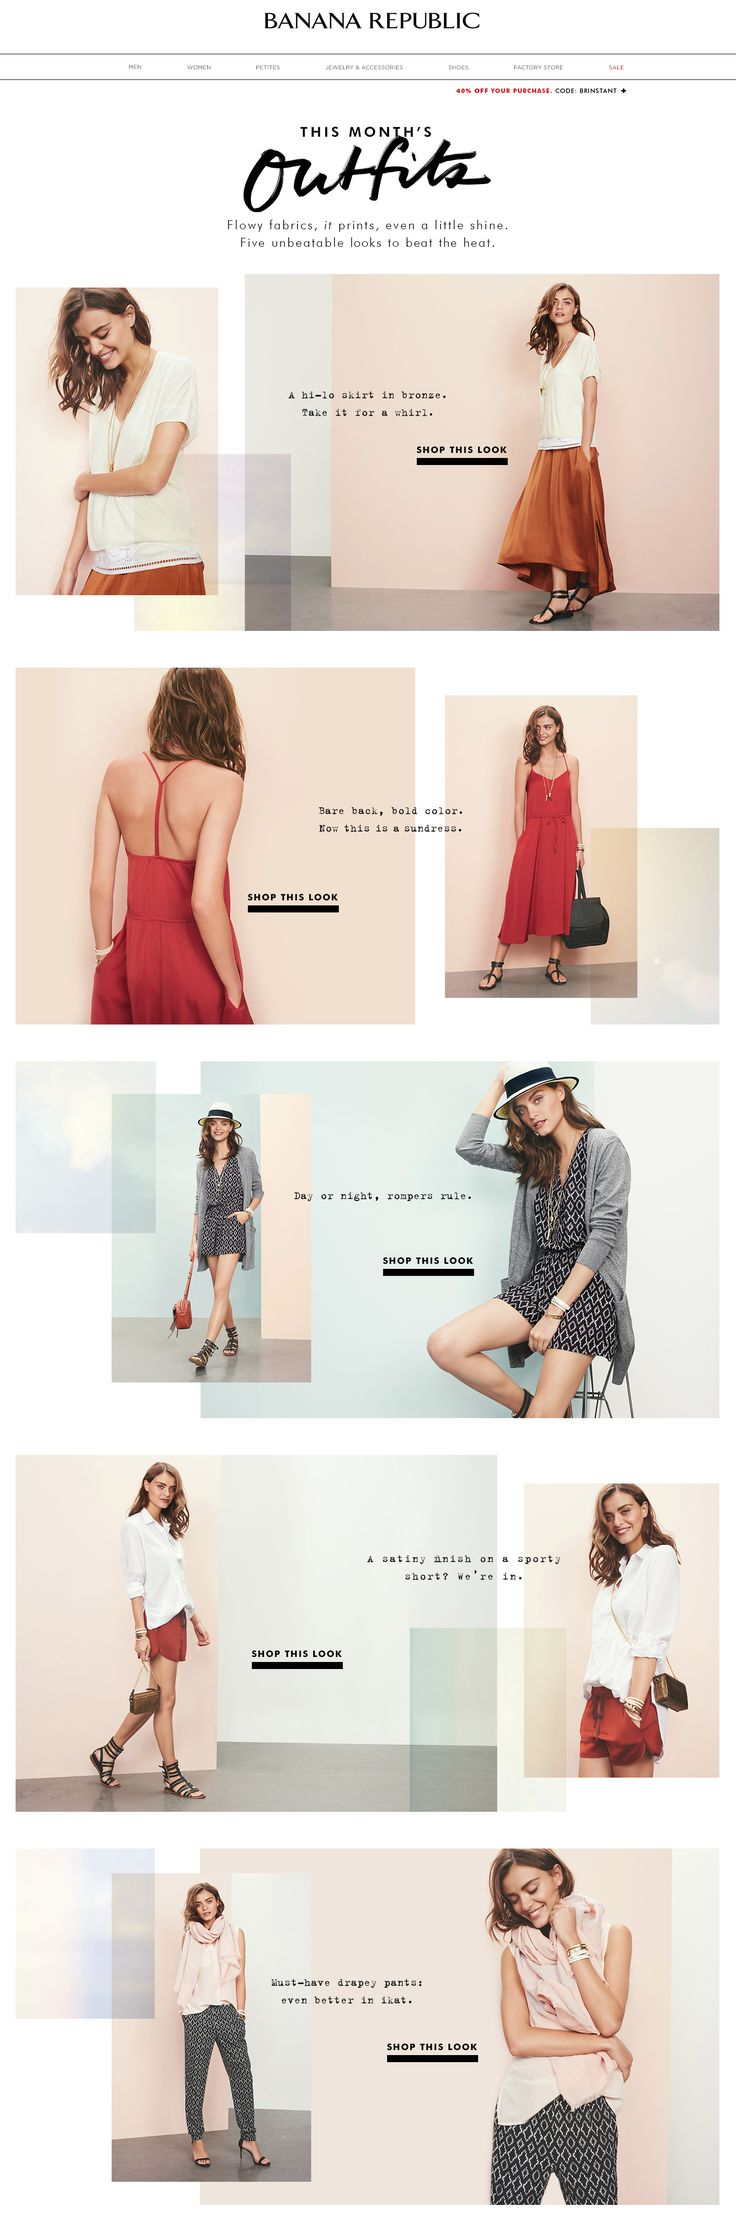 Banana Republic - pretty content layout with layered panels